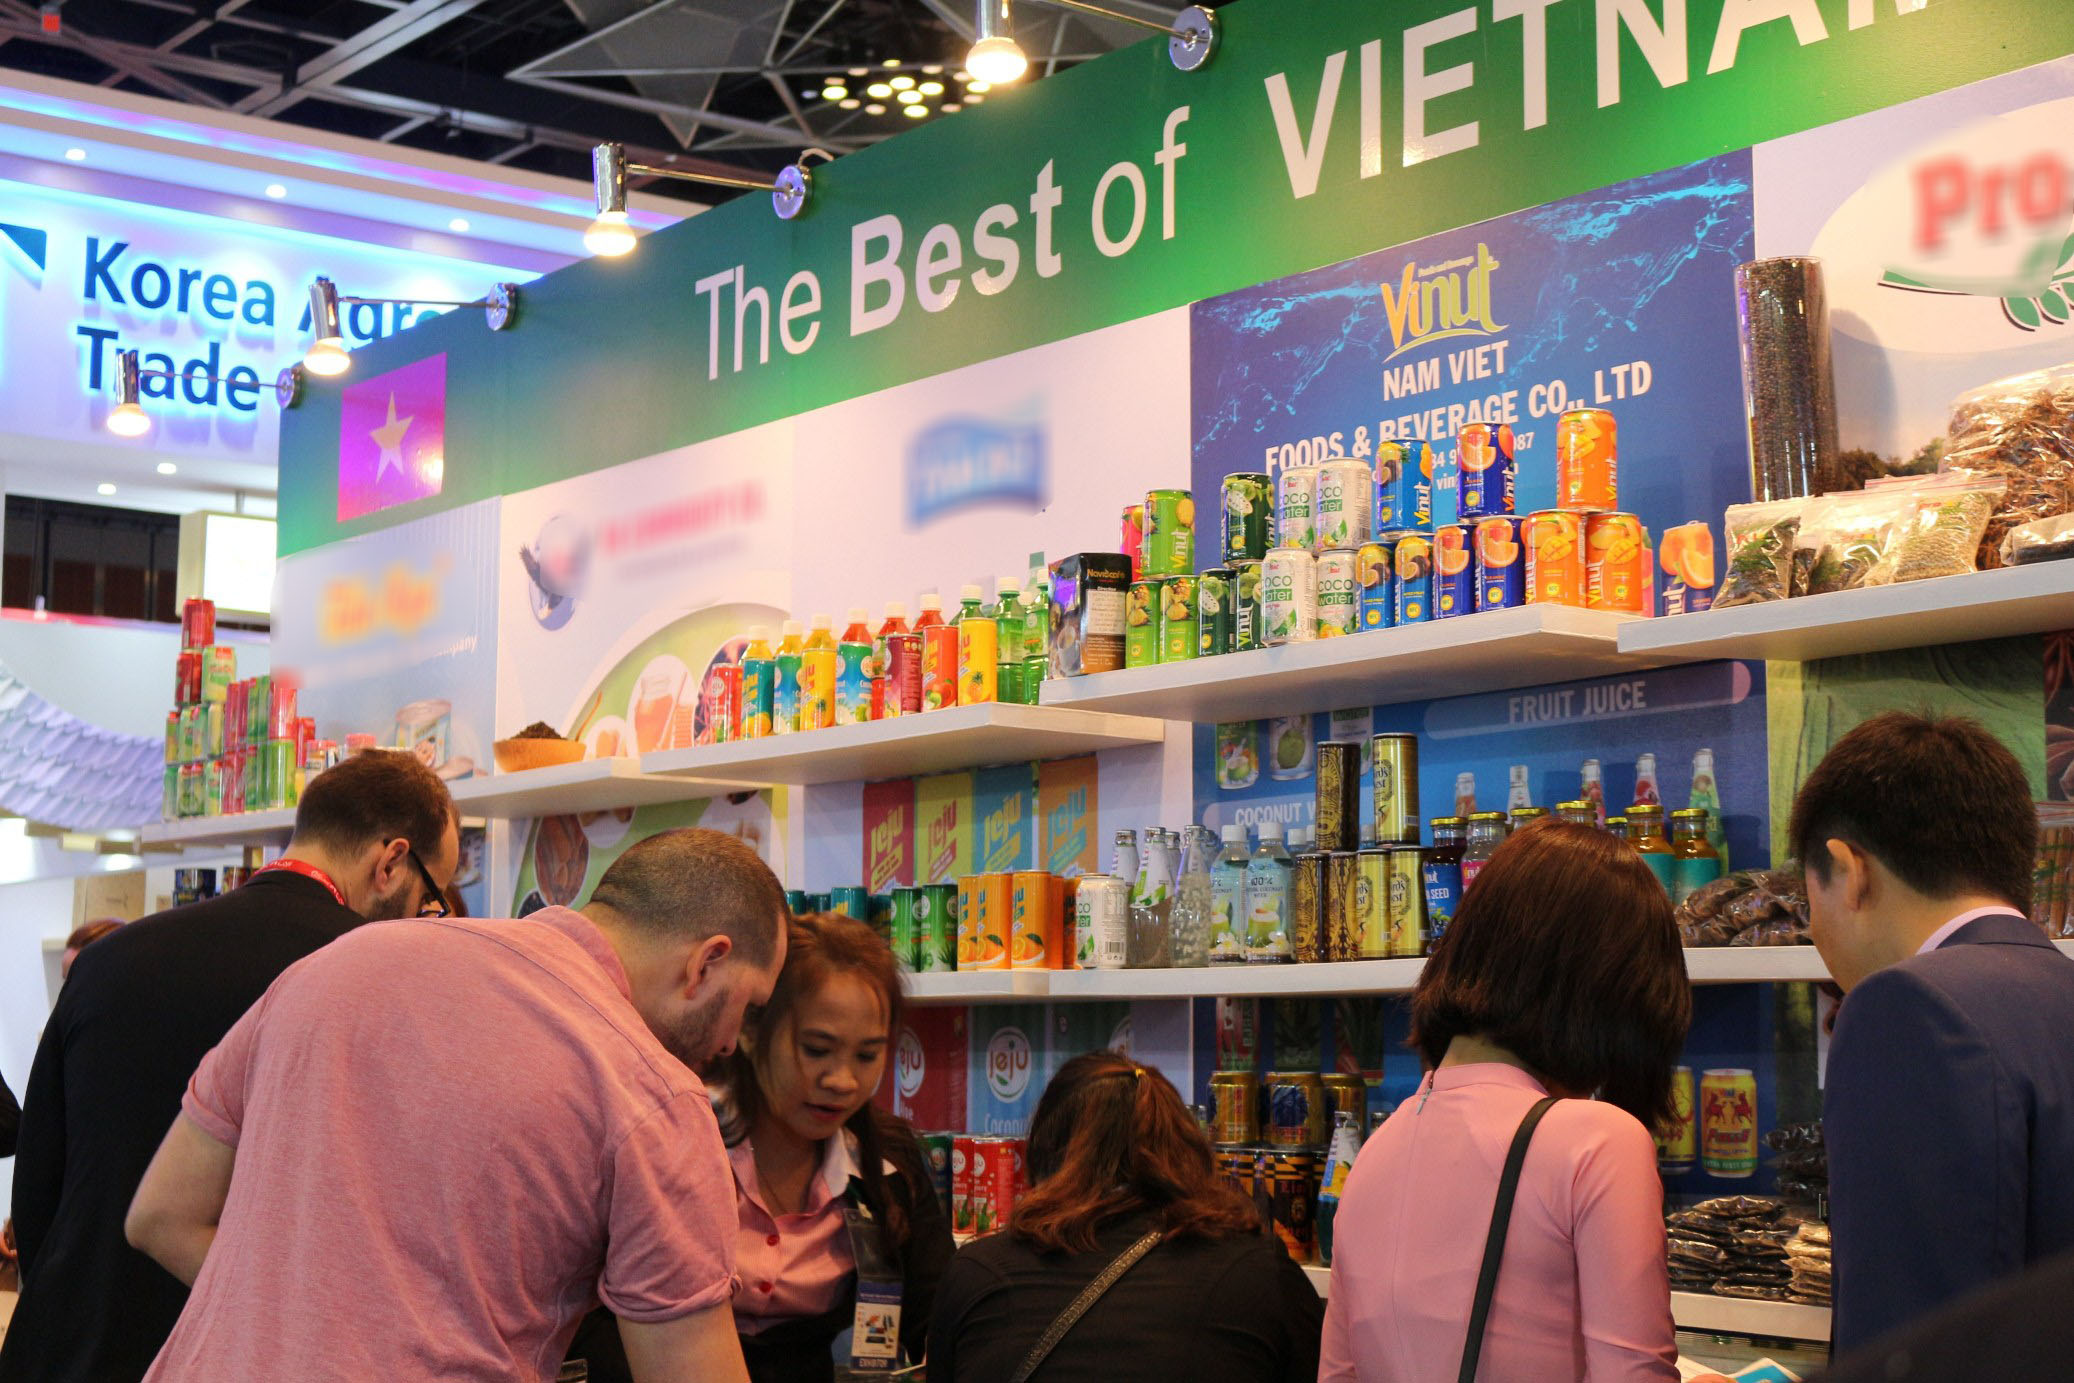 Nam Viet Foods & Beverage Co.,Ltd